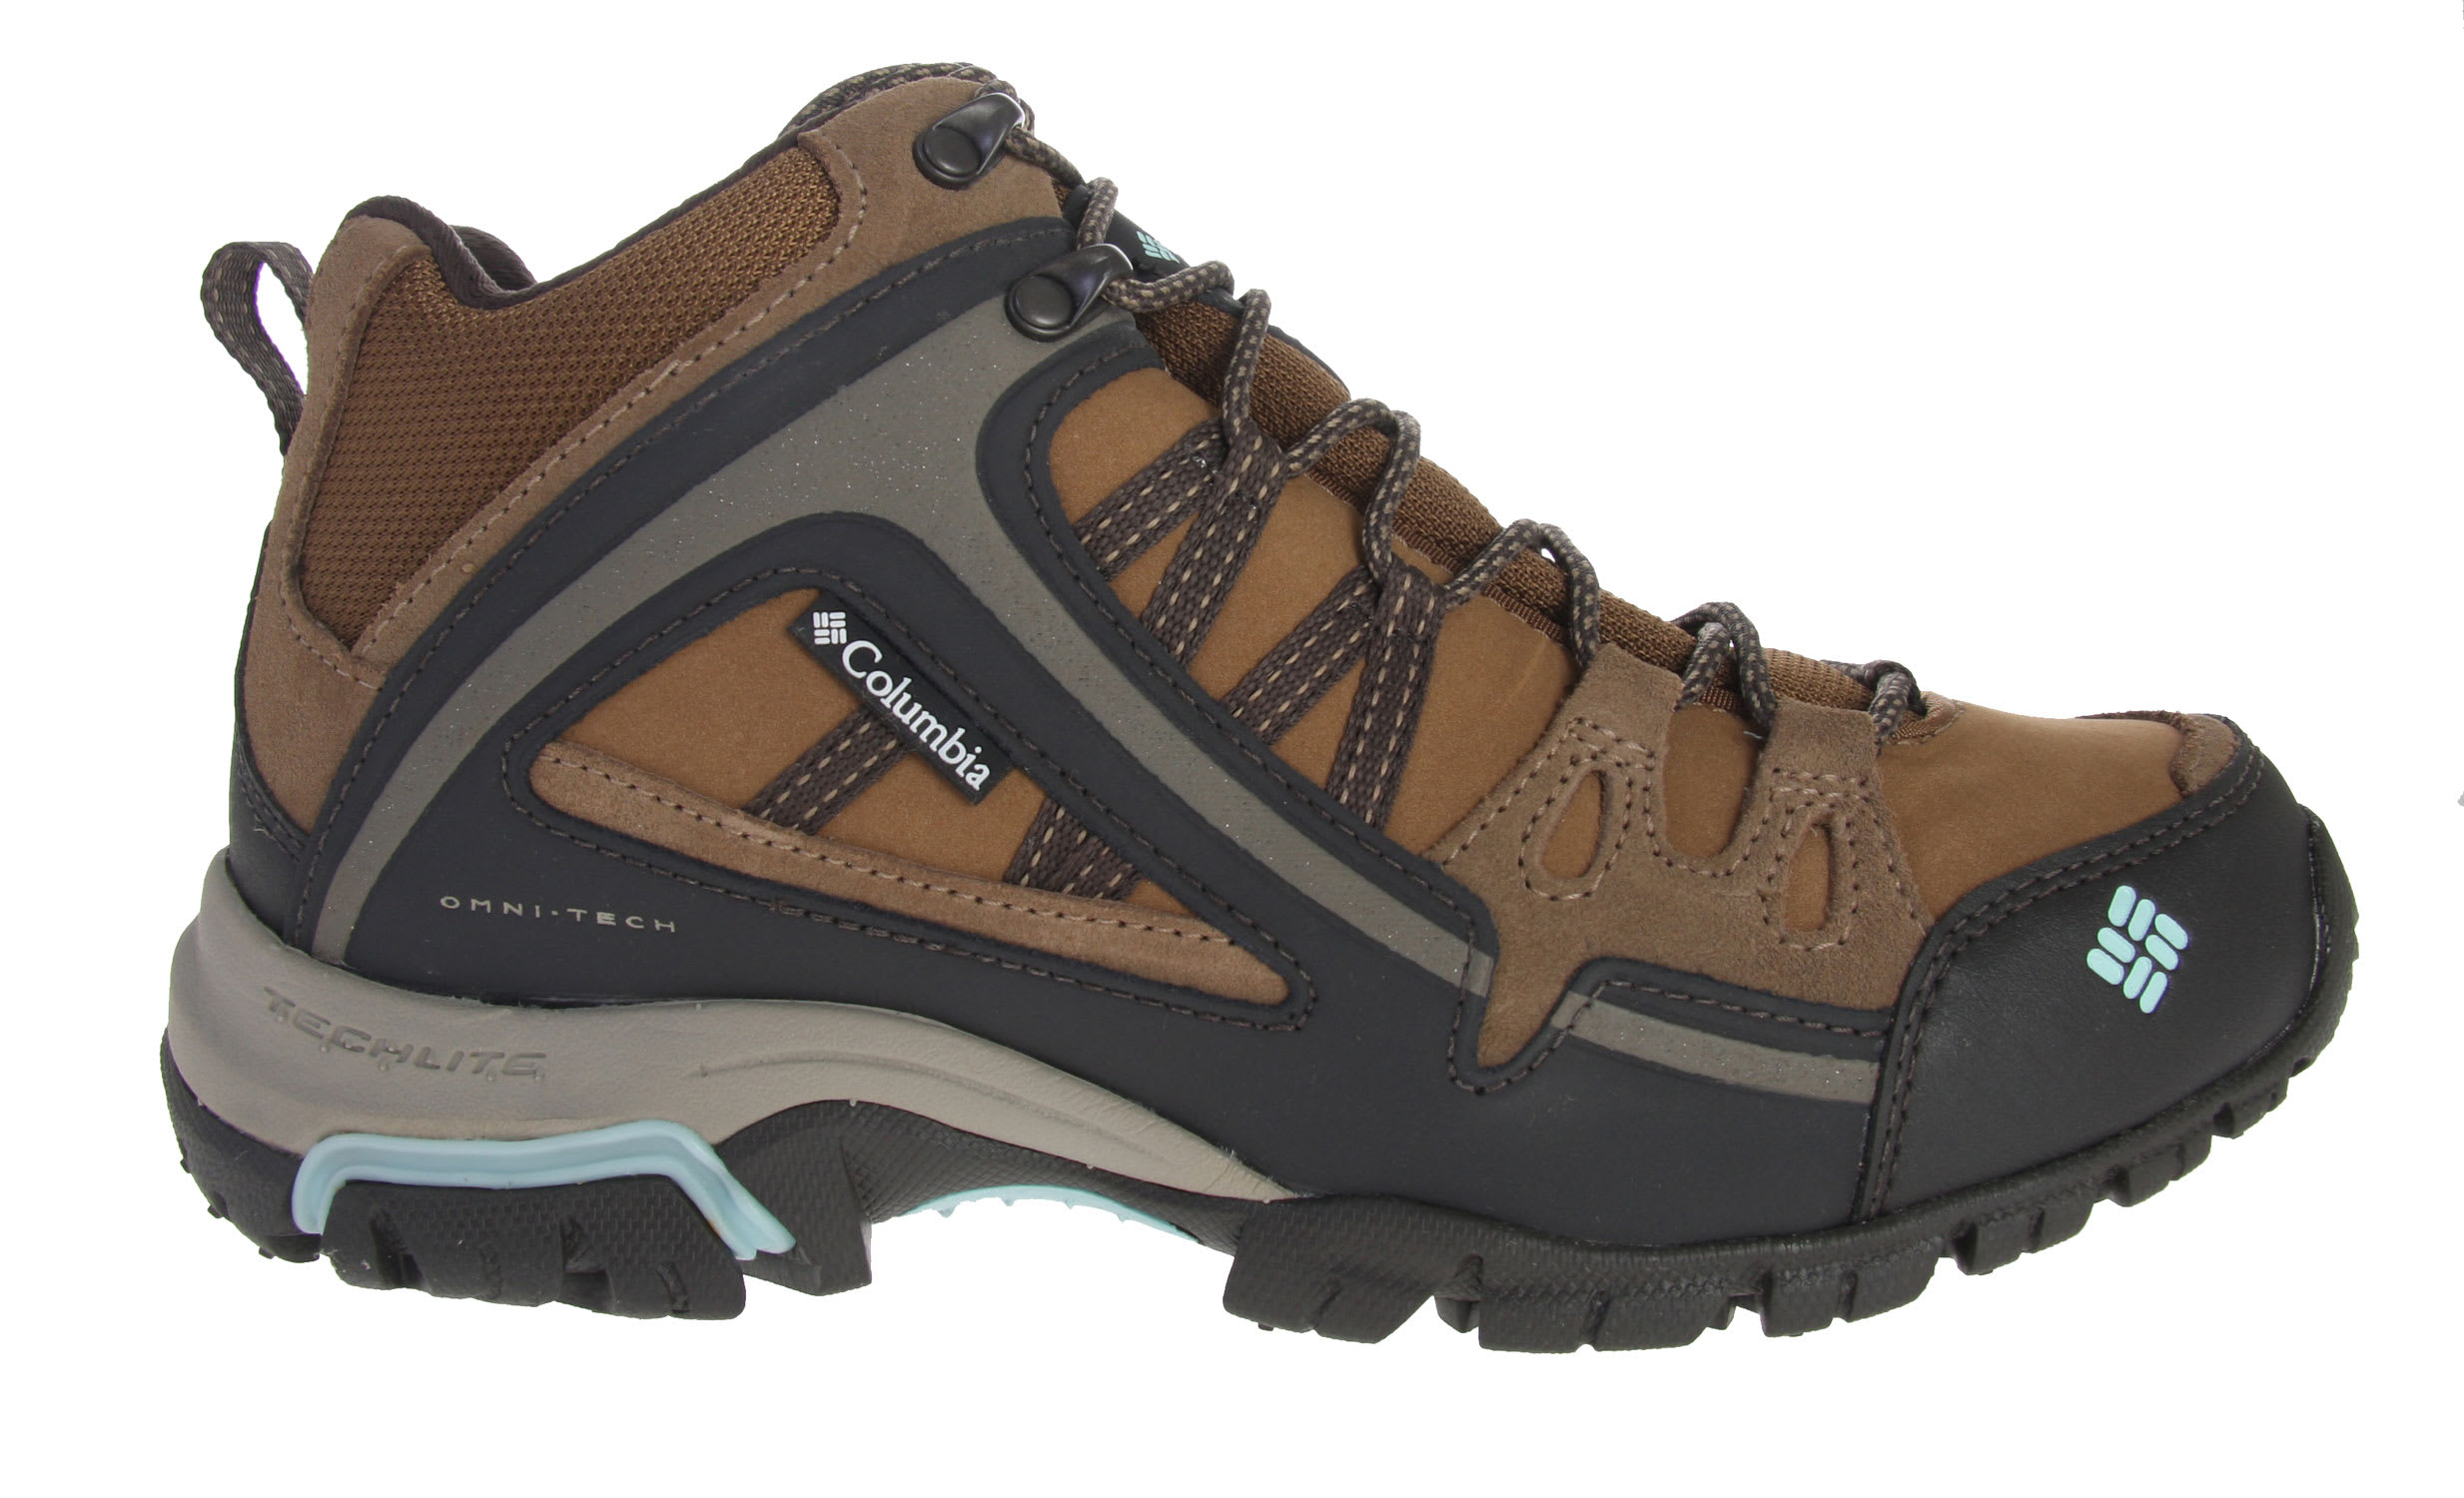 more information about columbia hiking shoes women on the site http